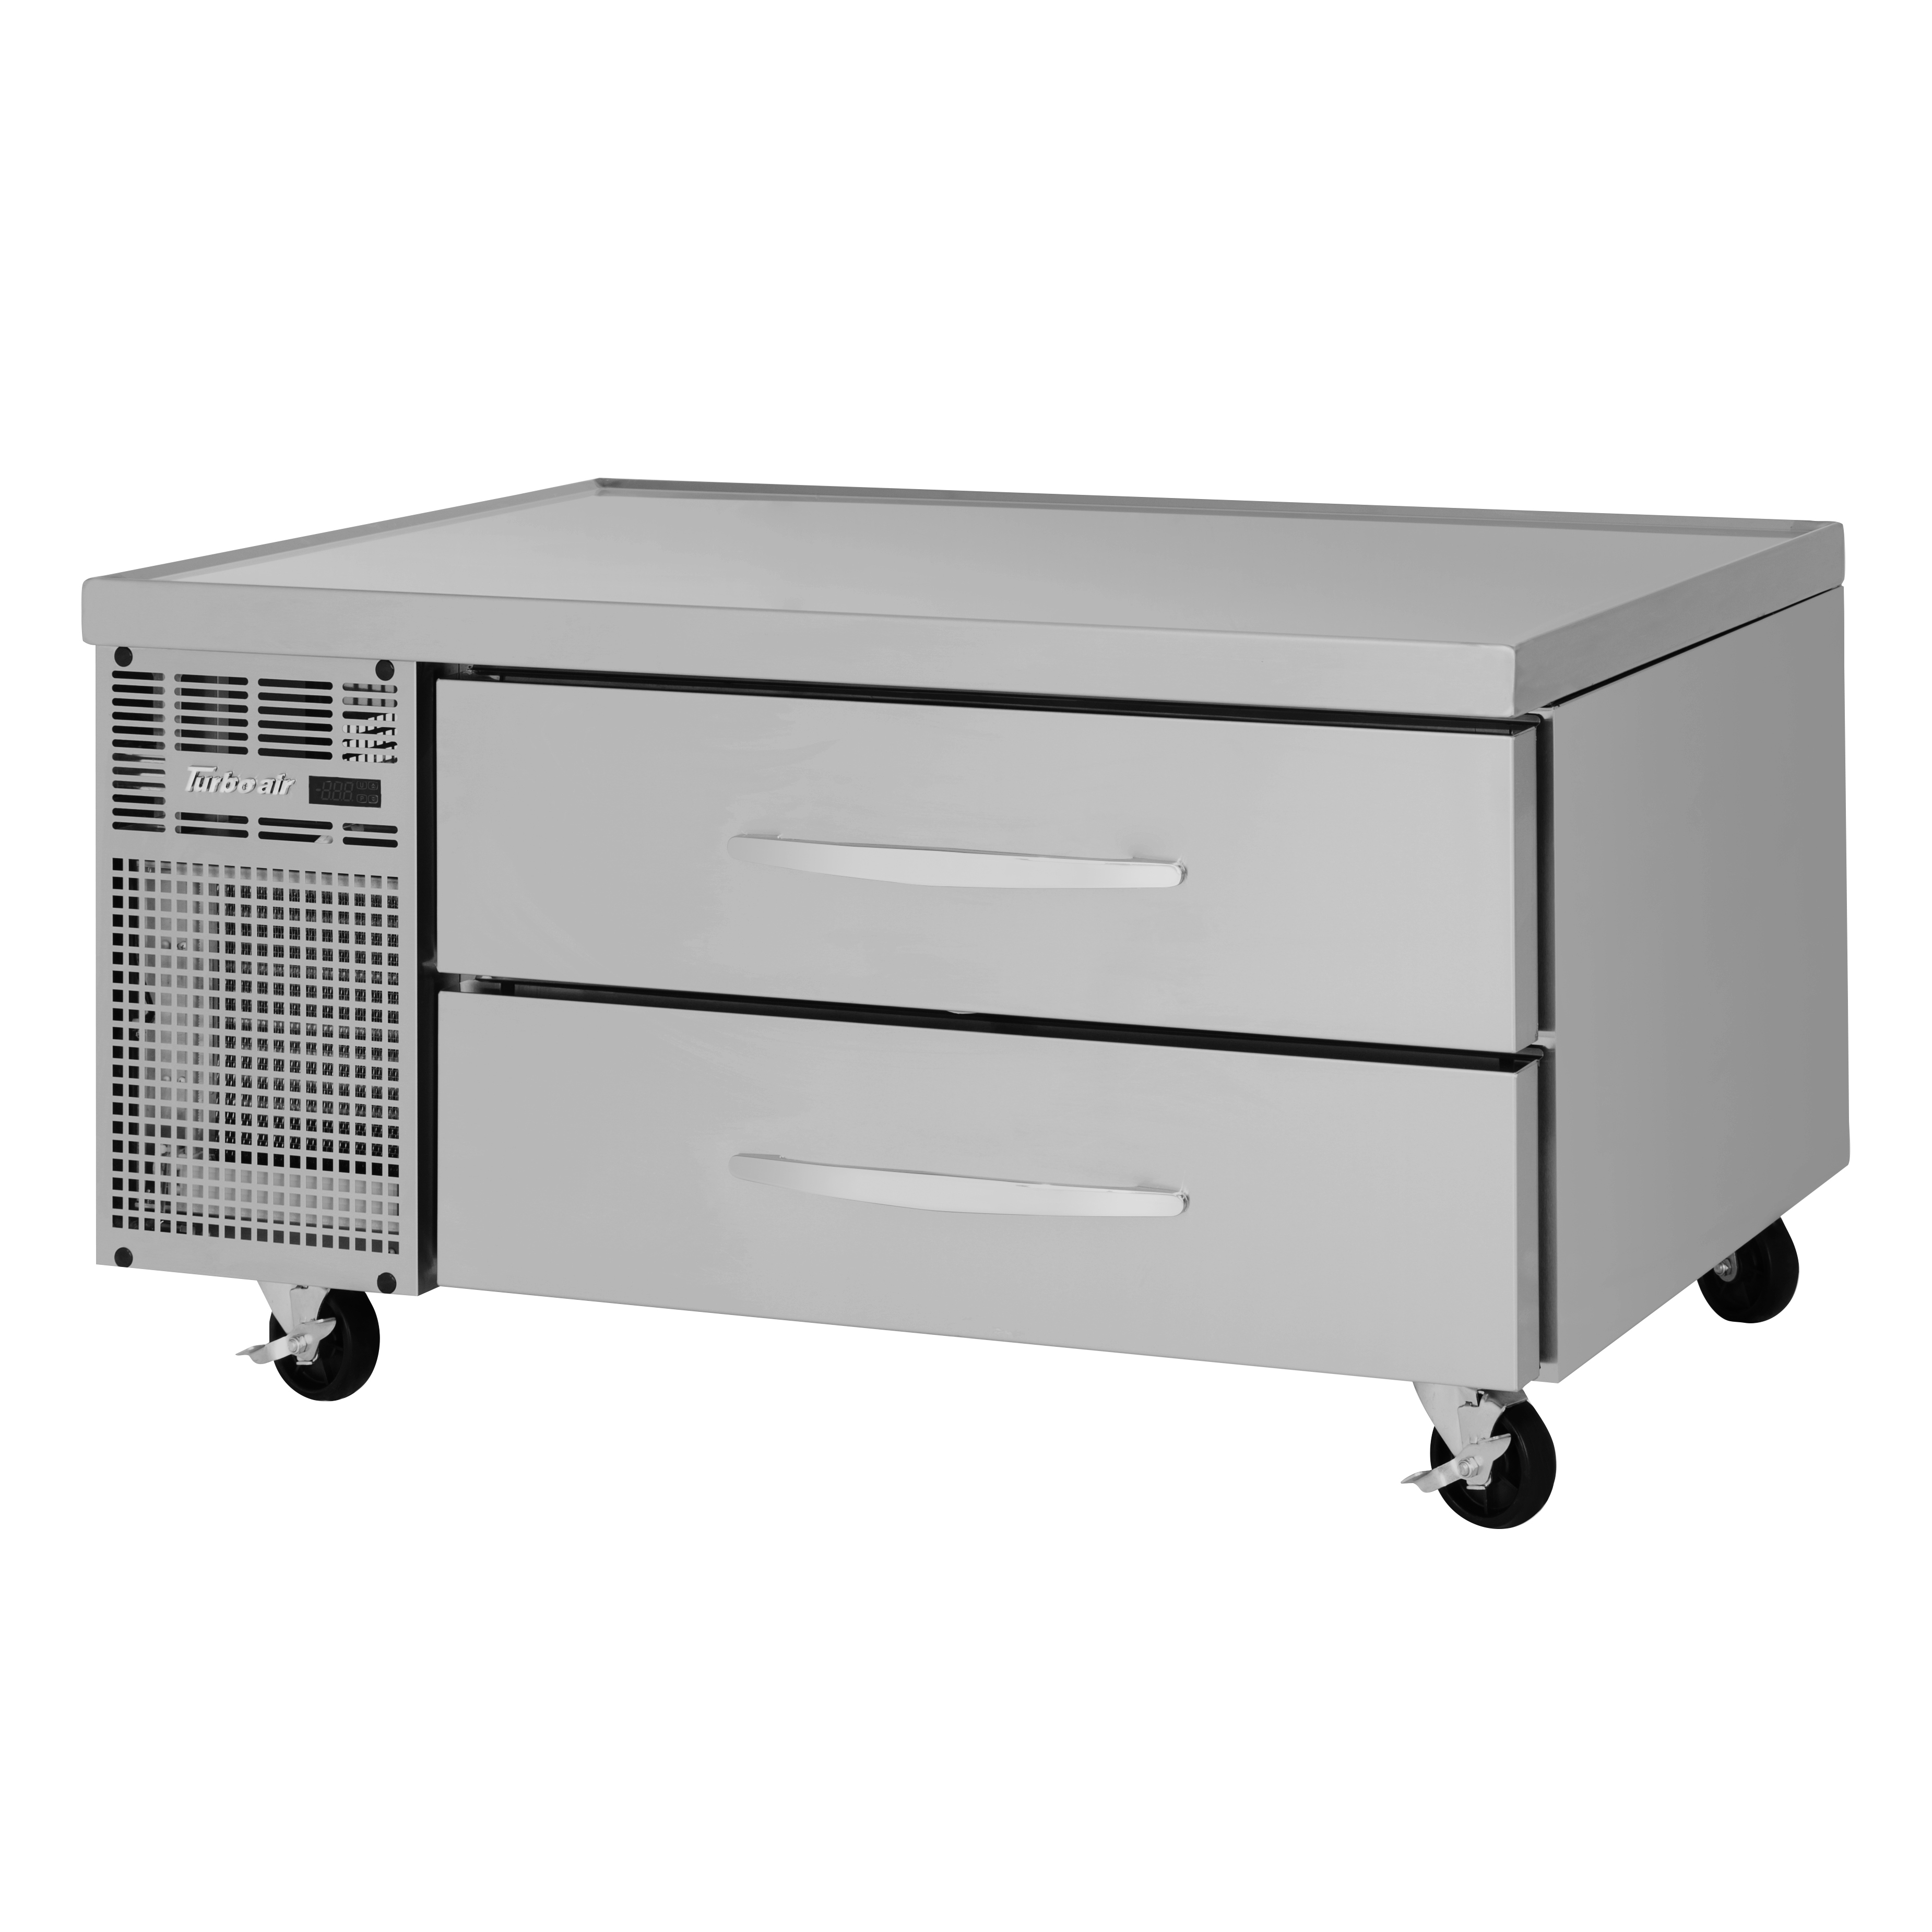 Turbo Air PRCBE-48R-N equipment stand, refrigerated base